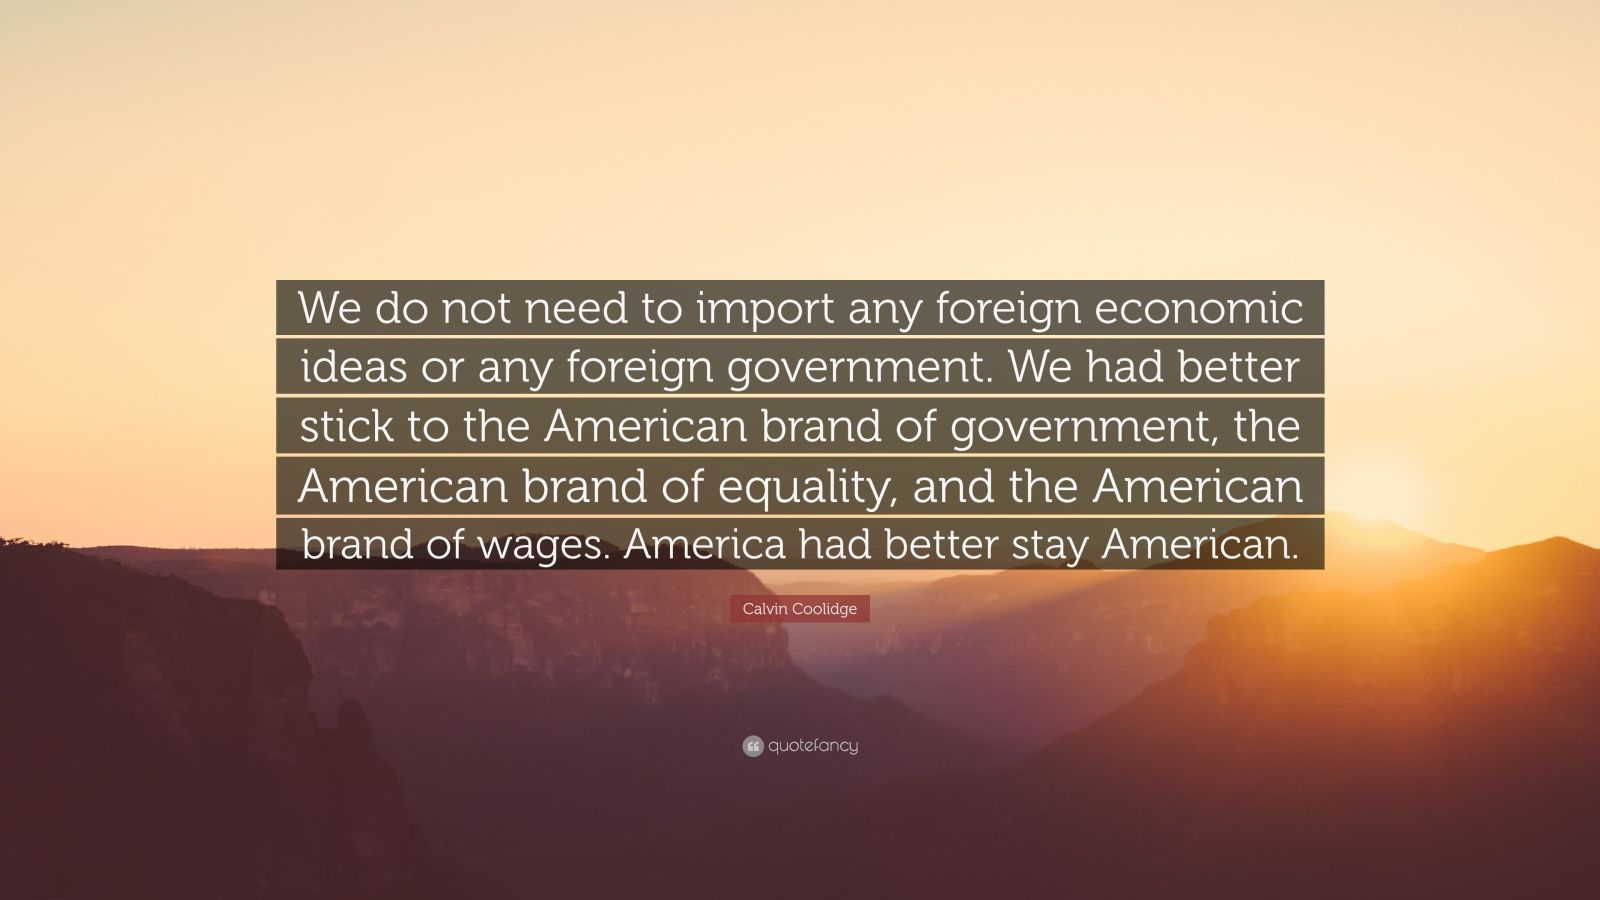 """Calvin Coolidge Quote: """"We do not need to import any foreign economic ideas or any foreign government. We had better stick to the American brand of government, the American brand of equality, and the American brand of wages. America had better stay American."""""""